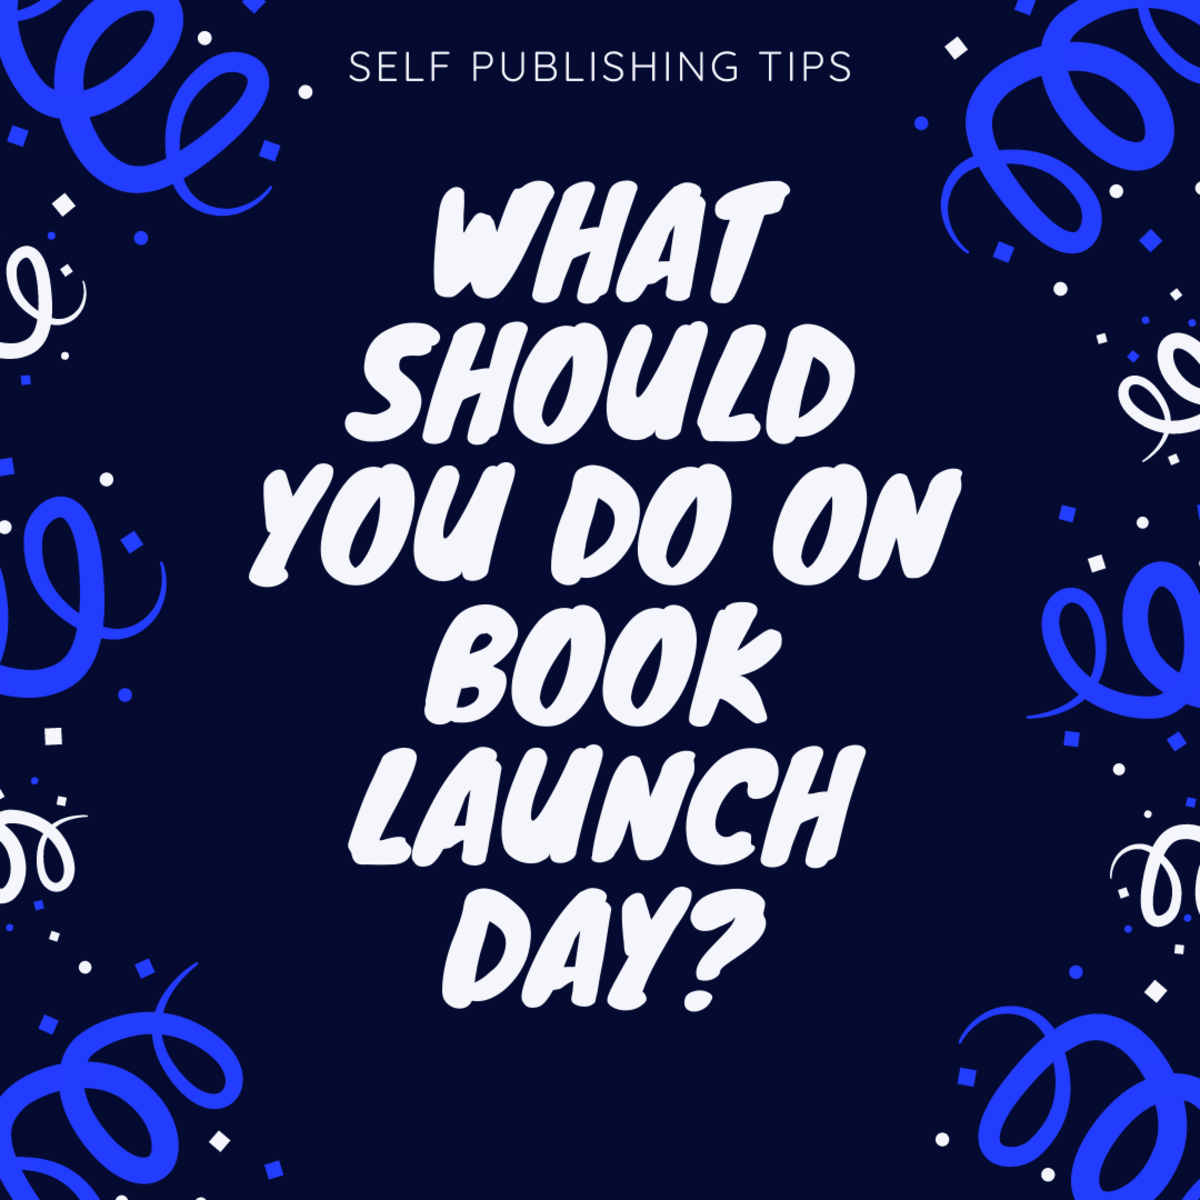 What should you do on the day your self published book launches? Insights and ideas.